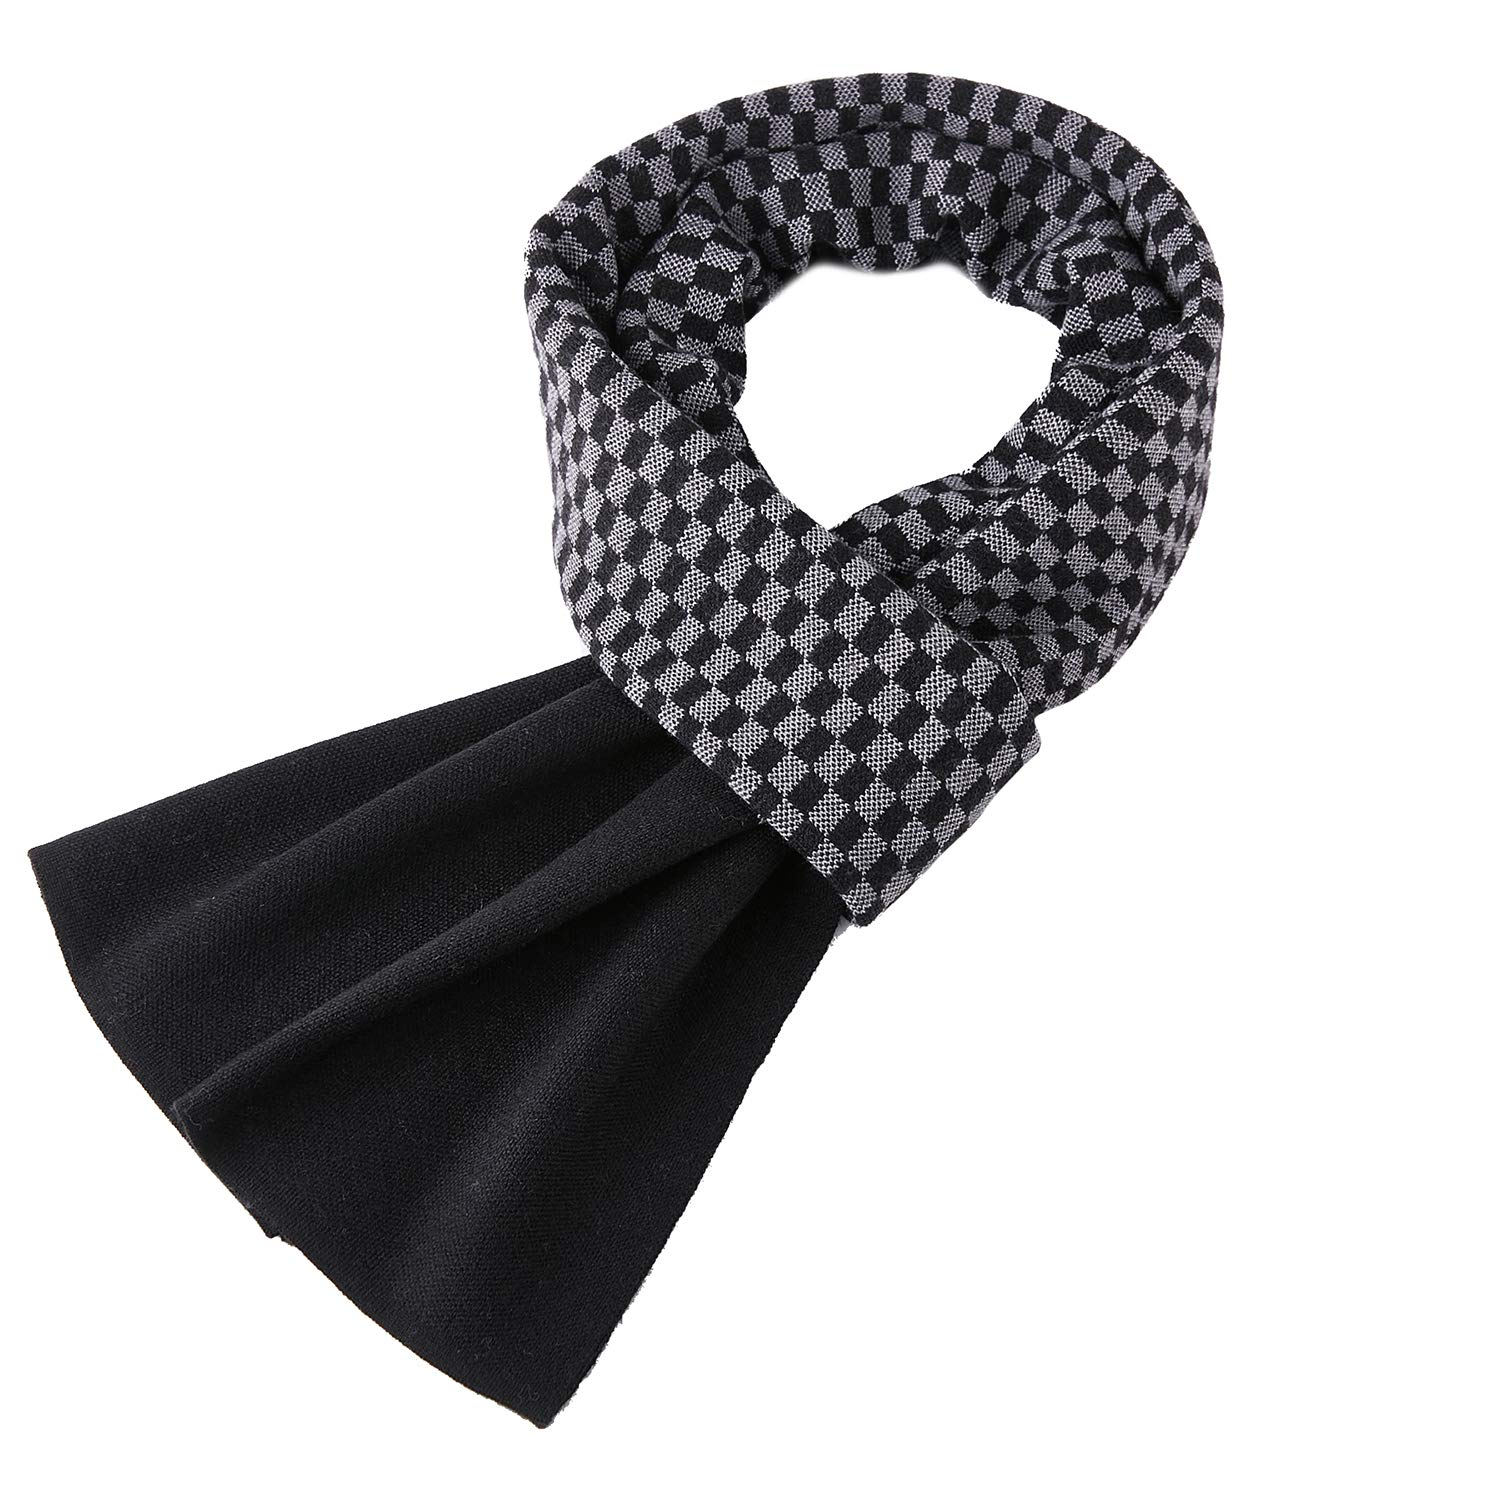 Taylormia Men's Winter Fashion Cashmere Knit Scarf Warm Soft Mixed-color Long Scarves Black Grey by Taylormia (Image #1)